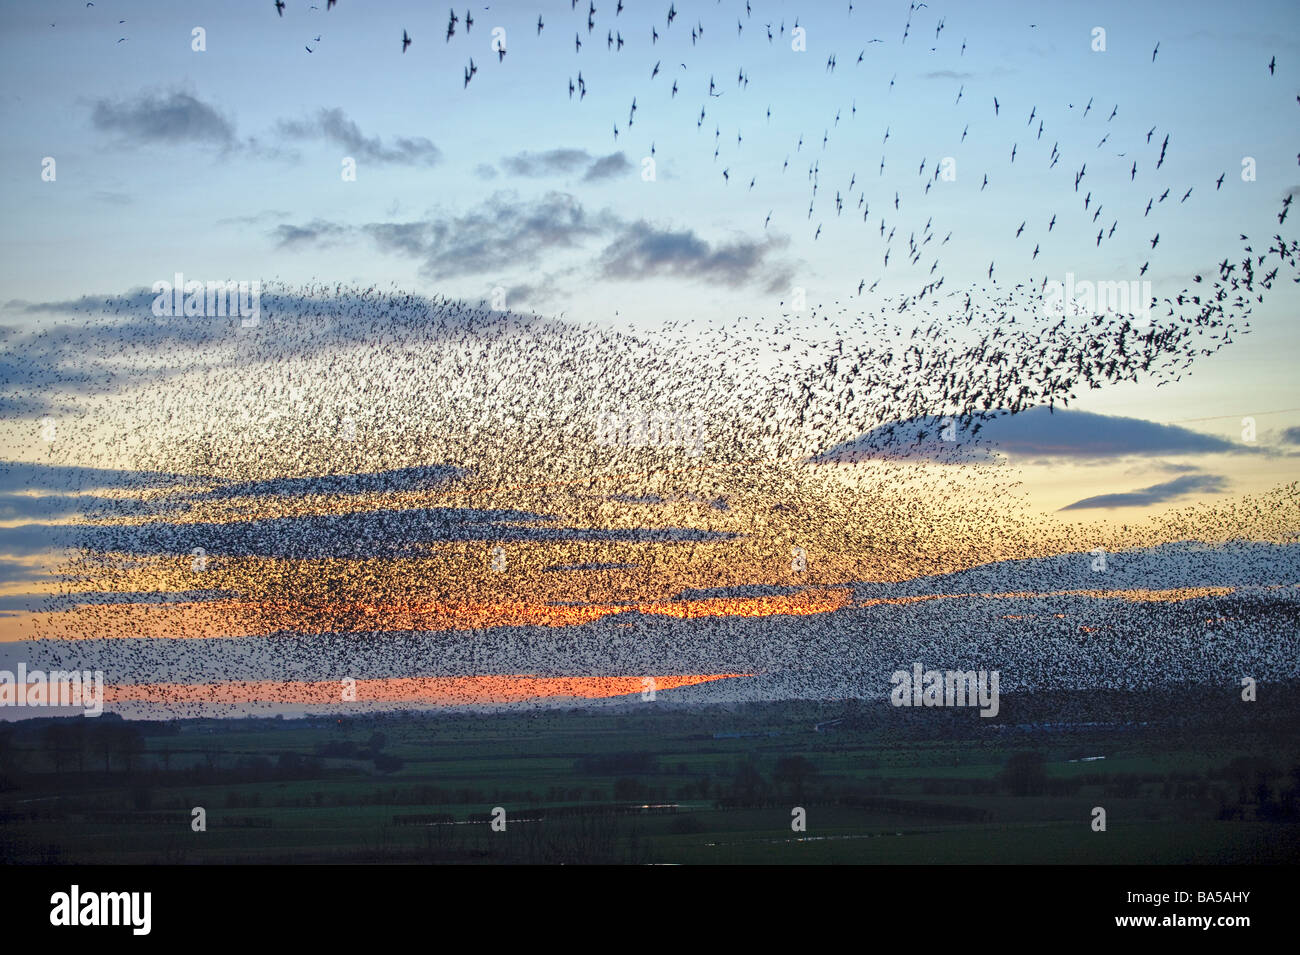 Flock of starlings Sturnus vulgaris flying to winter roost at dusk near Gretna Green Scotland February 2009 - Stock Image